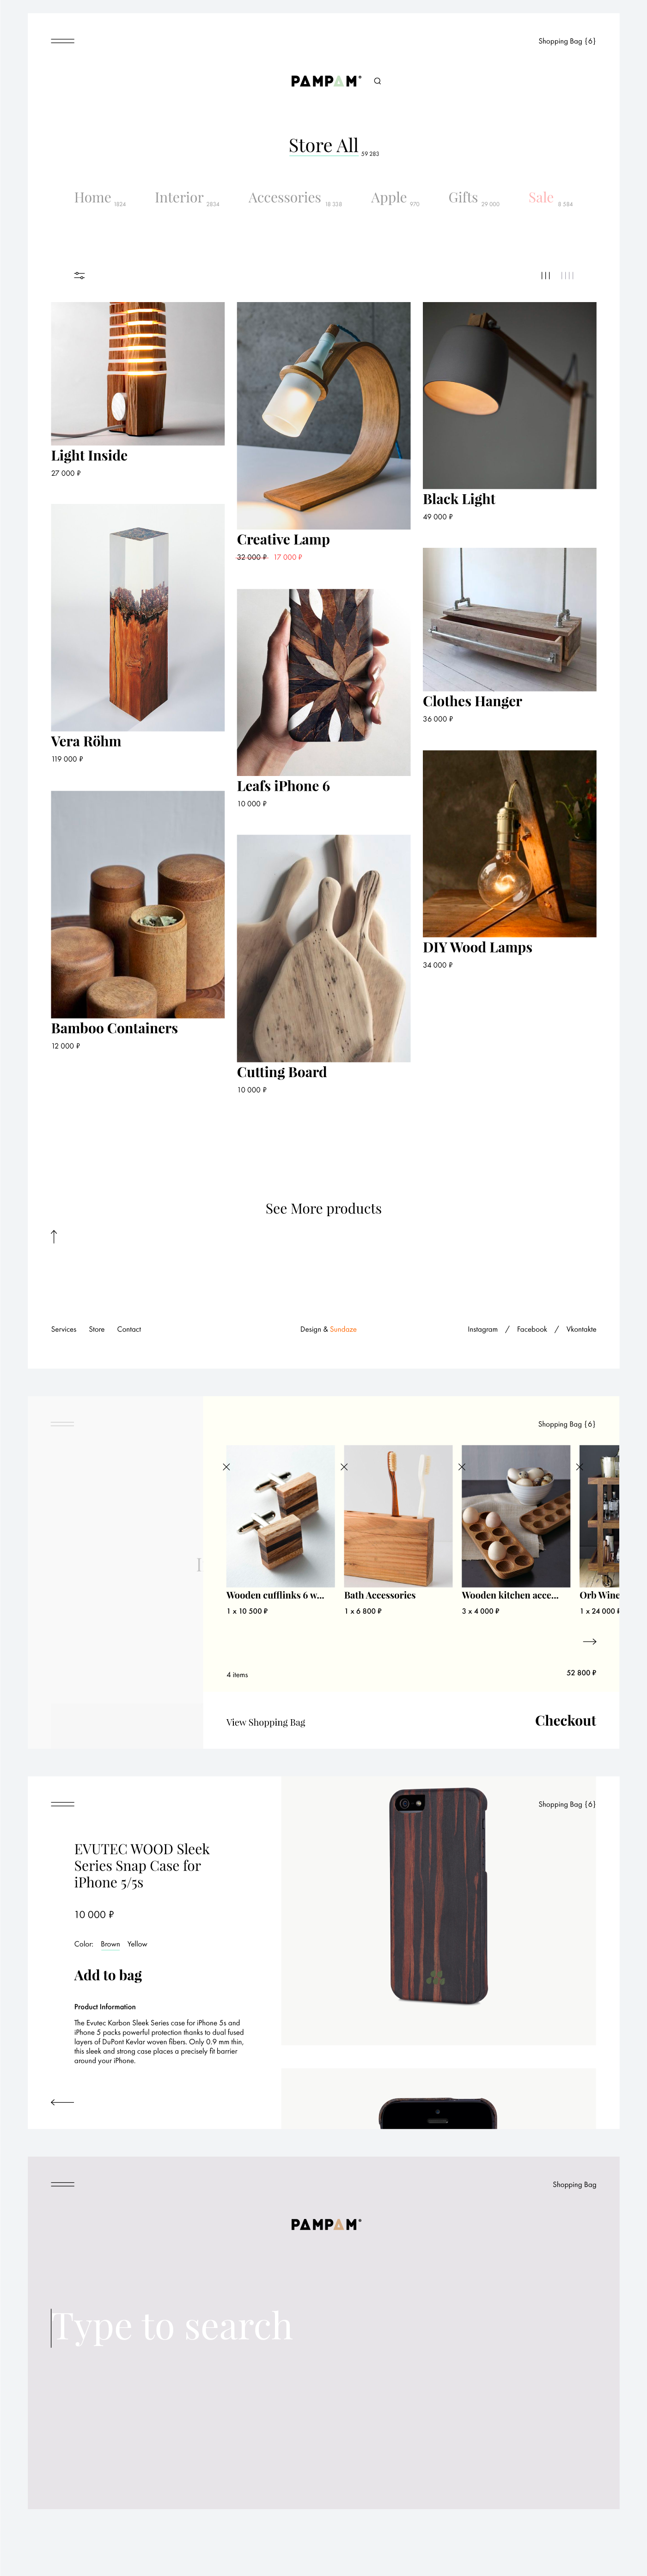 pampam  store shop minimal e-commerce mobile apps